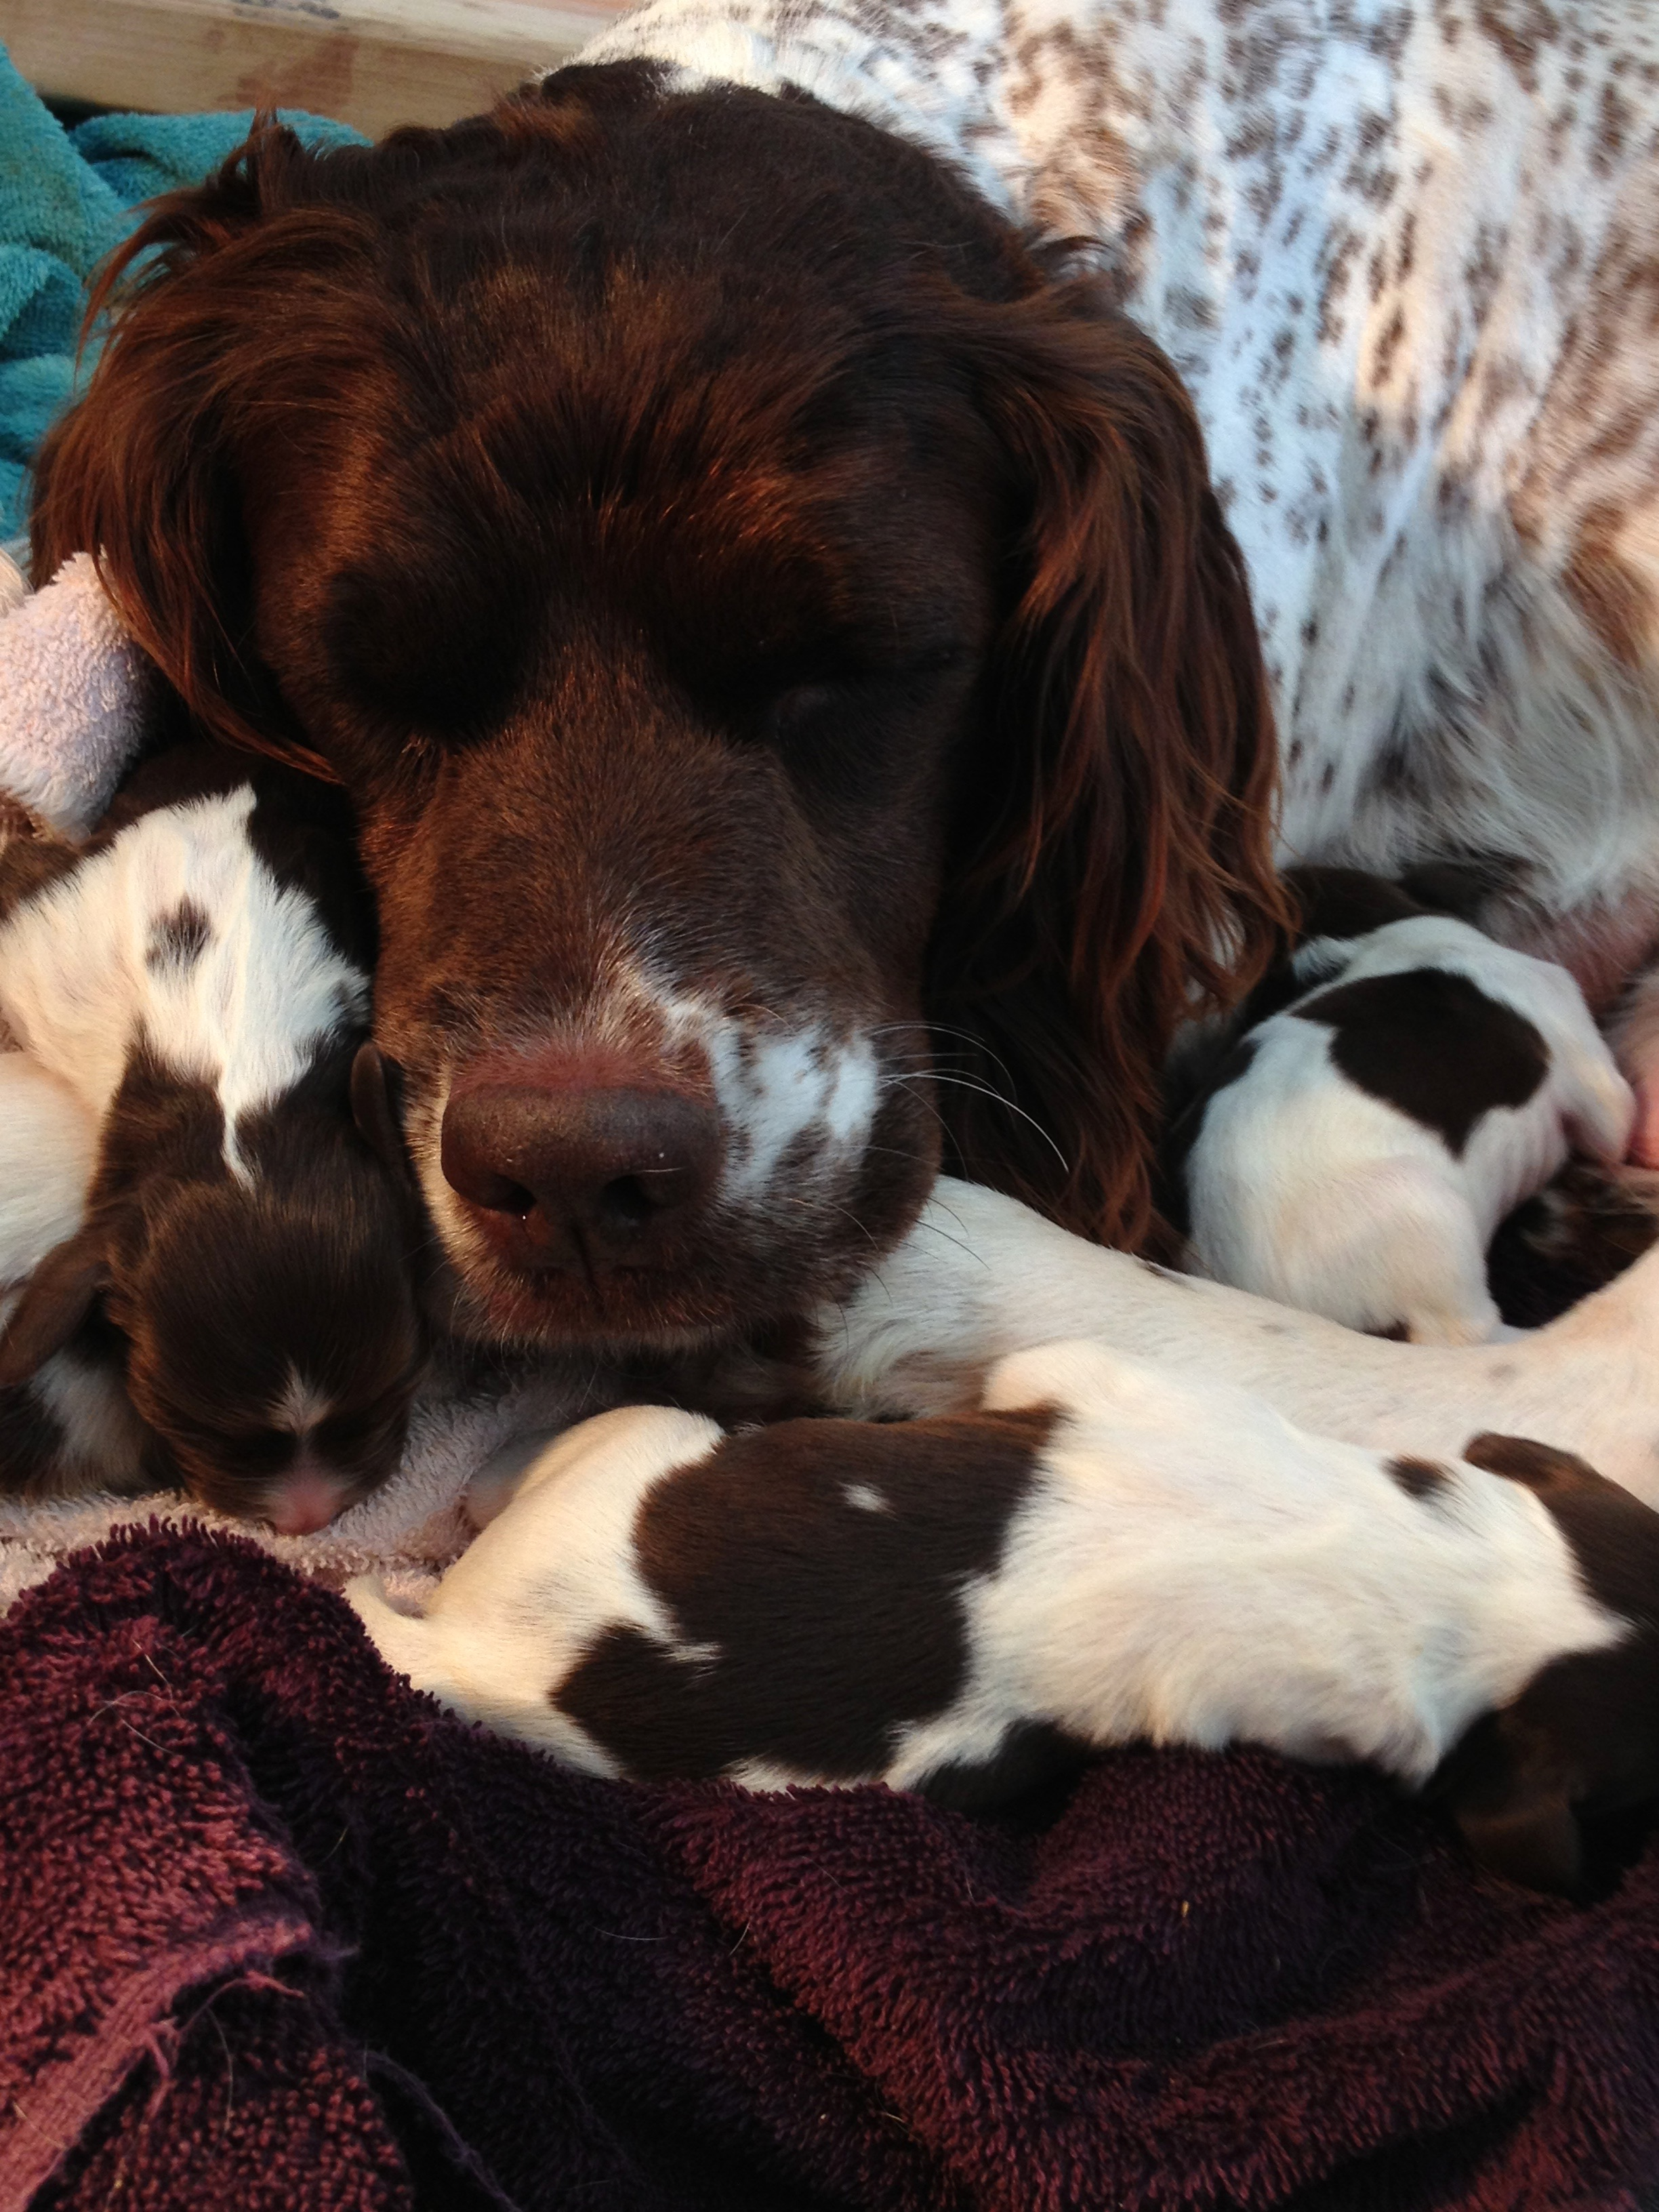 Loving her babies, such a good mom